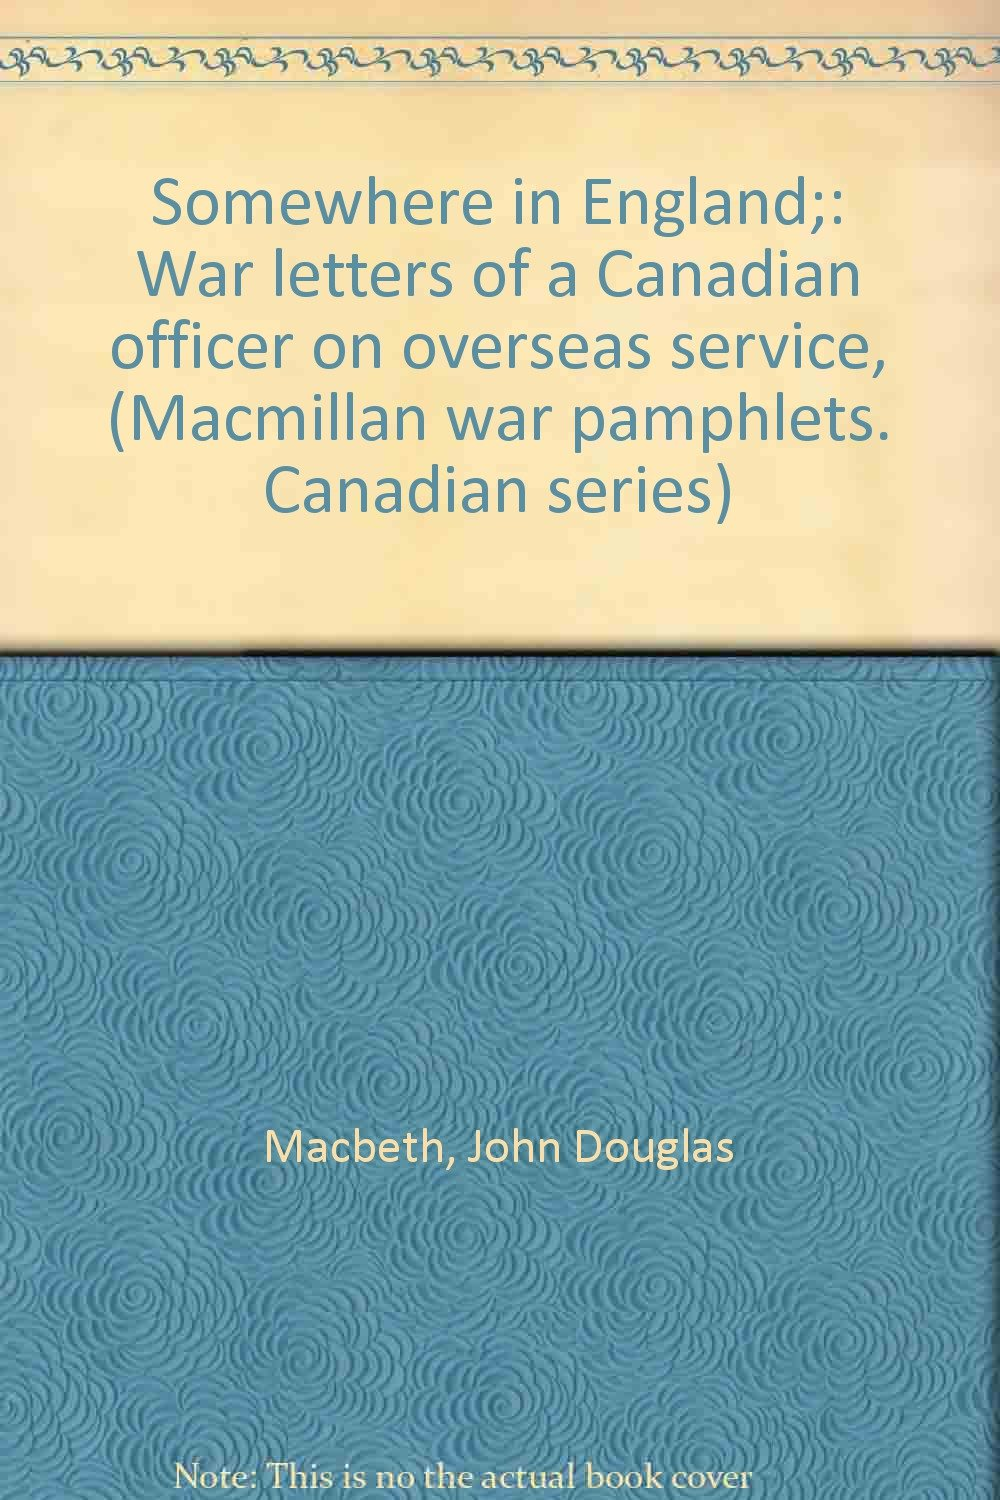 Somewhere in England;: War letters of a Canadian officer on overseas service, (Macmillan war pamphlets. Canadian series)